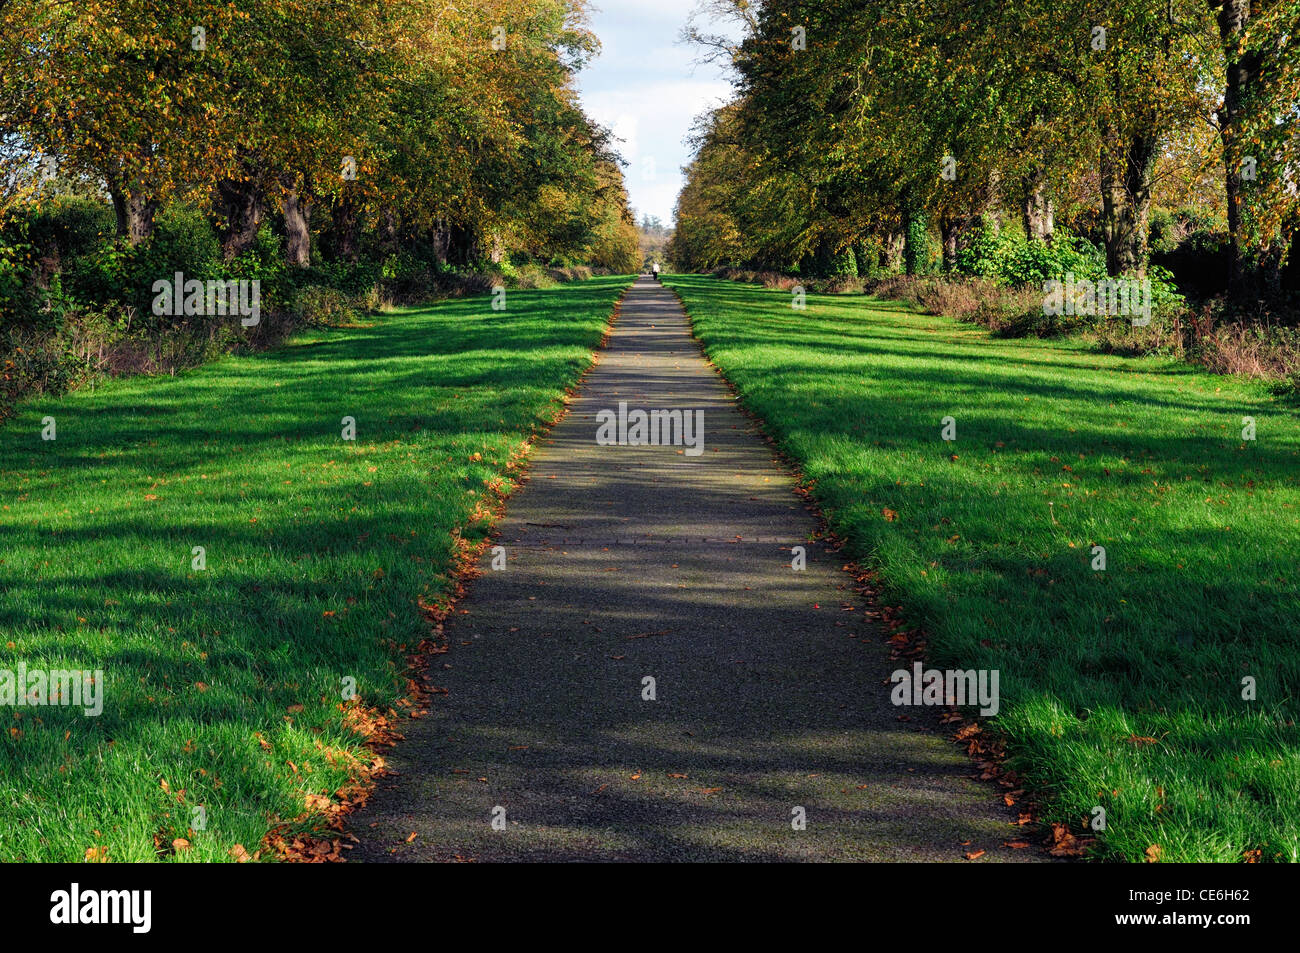 carton walk maynooth ireland Avenue path walkway trail lead head leading heading distant distance tree - Stock Image